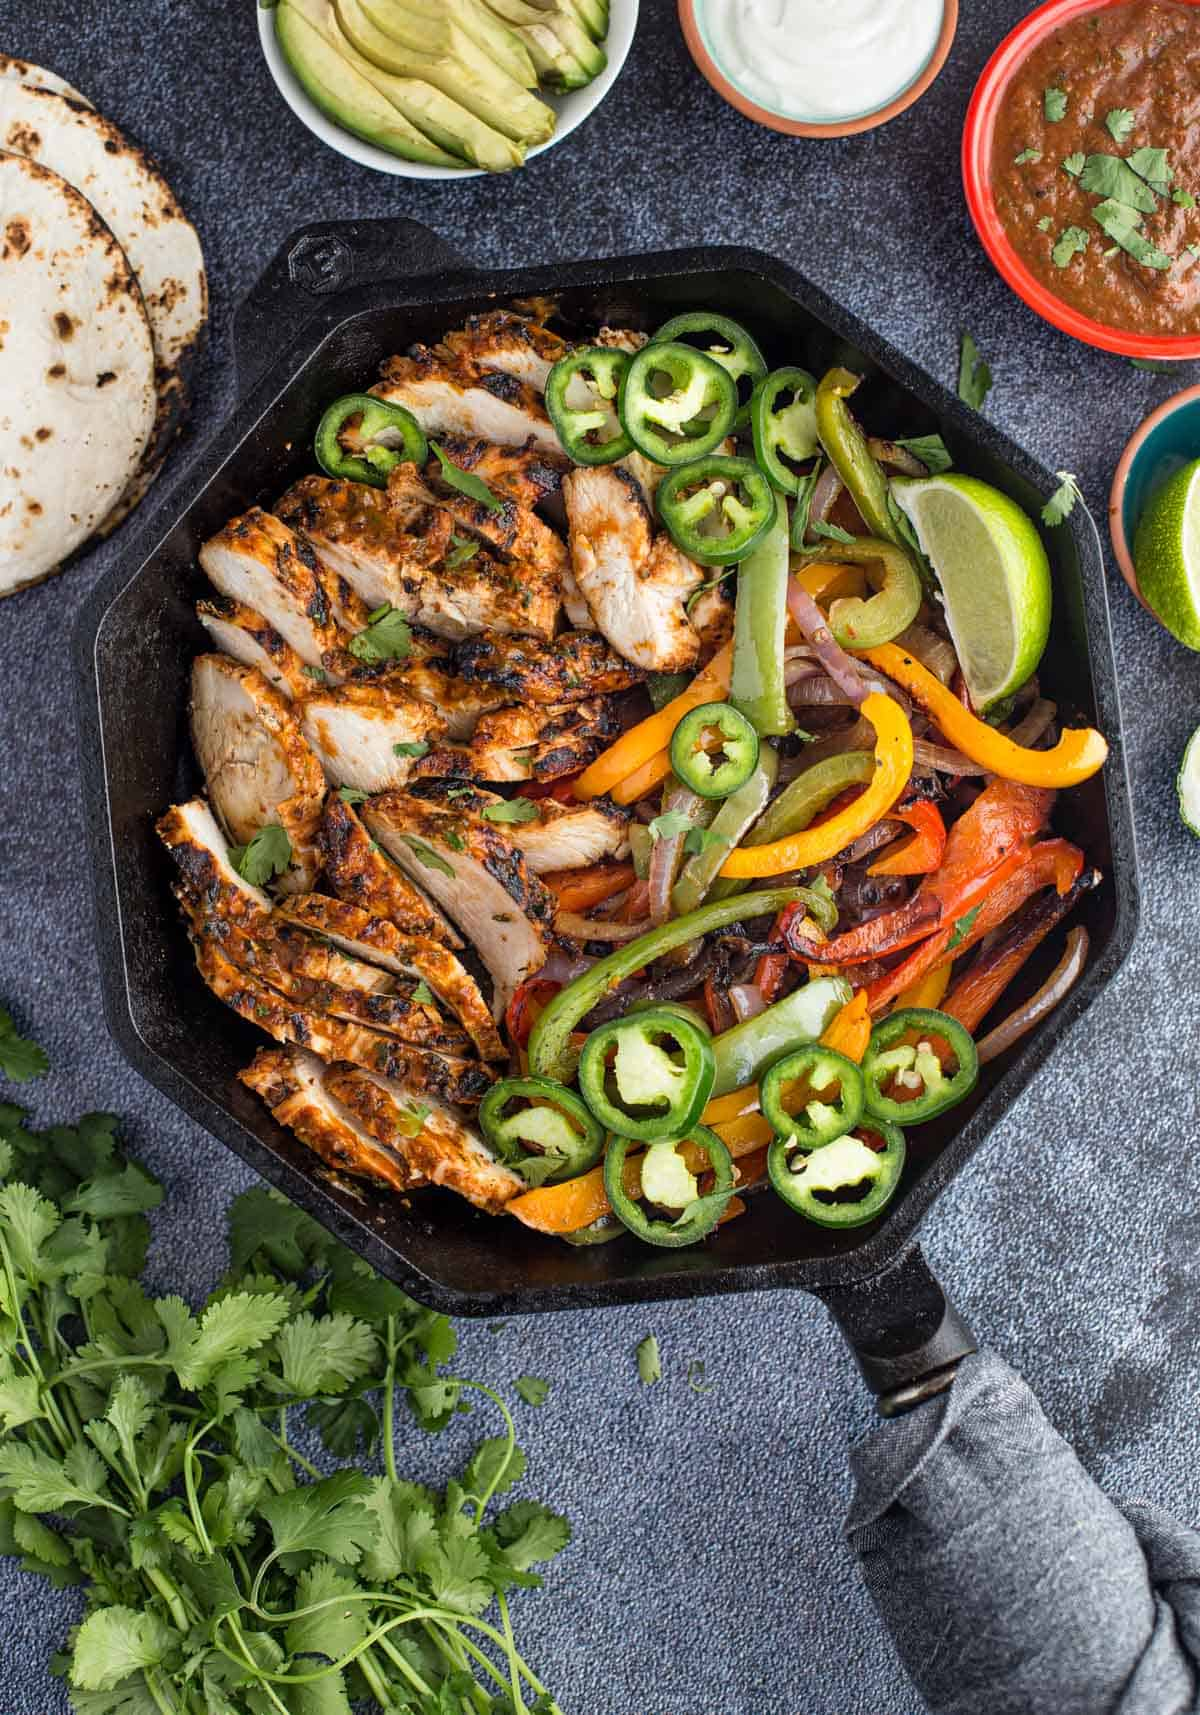 Grilled Chicken Fajitas with vegetables in a cast iron pan surrounded by fajita toppings